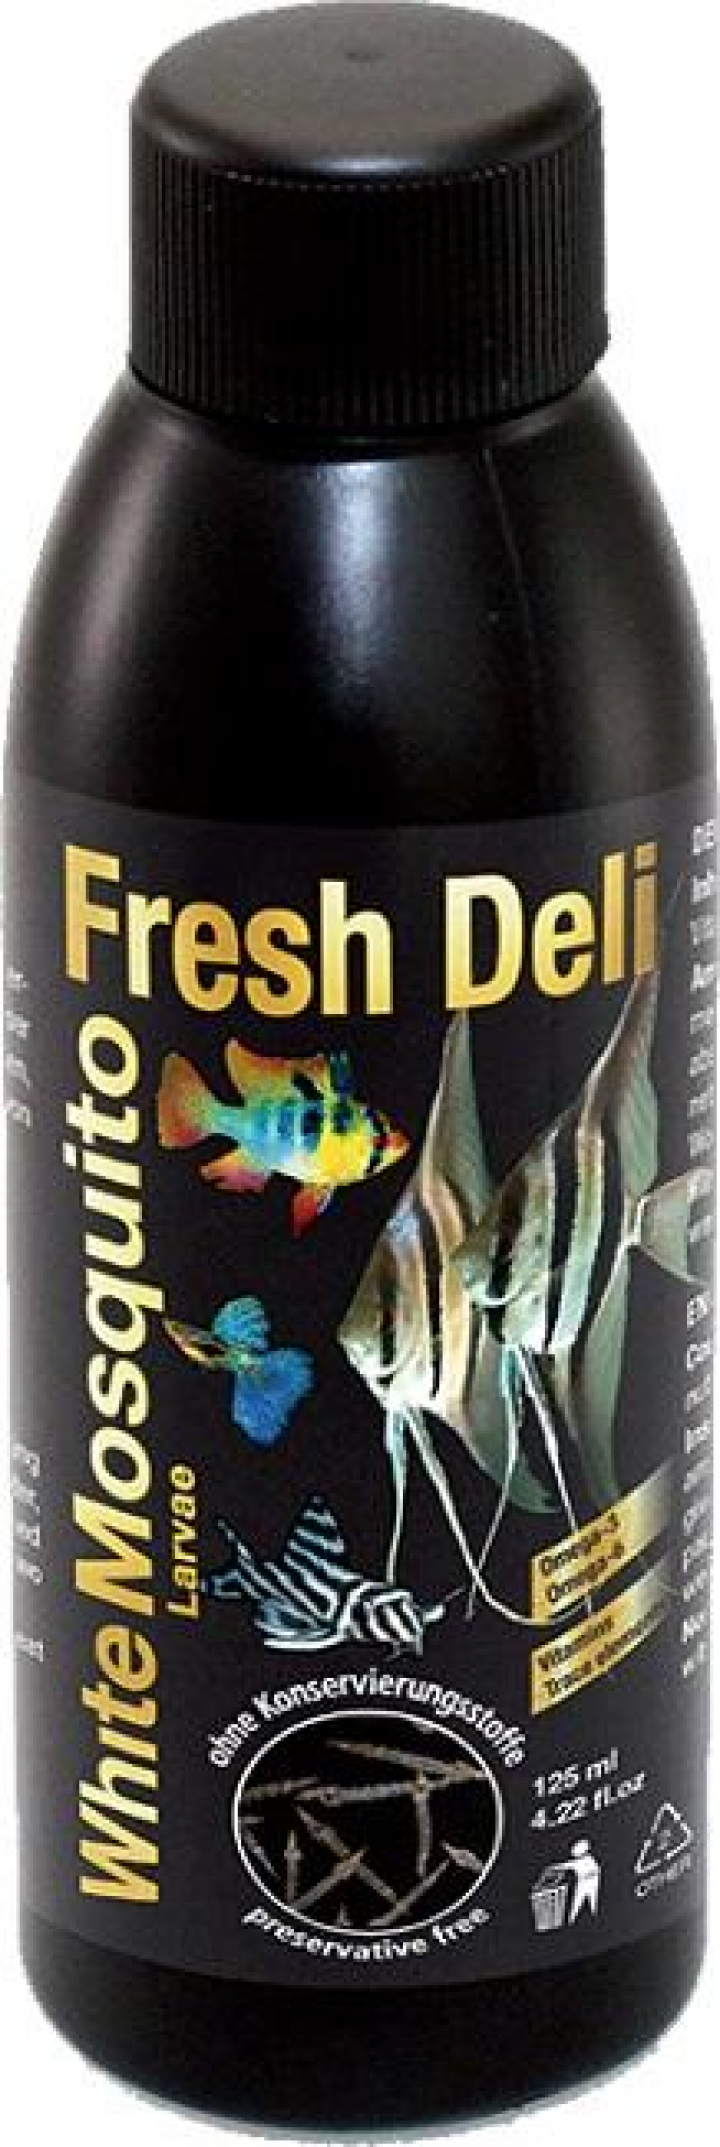 Discusfood Fresh Deli, White mosquito larvae in nutrient solution 125ml